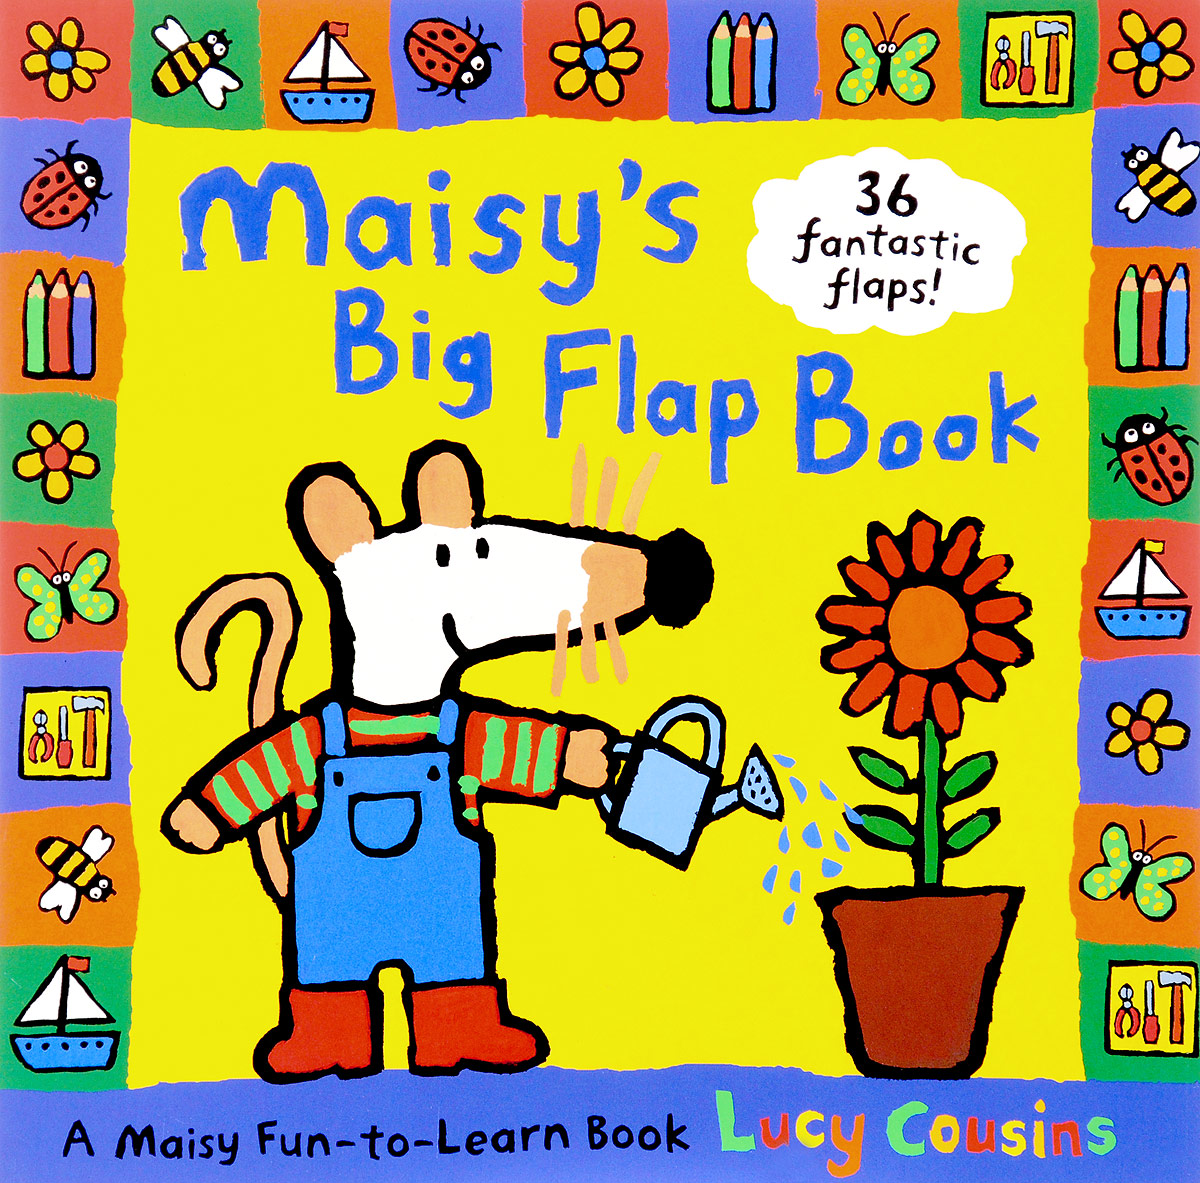 Maisy's Big Flap Book александр мазин трон императора isbn 978 5 17 056869 7 978 5 9725 1488 5